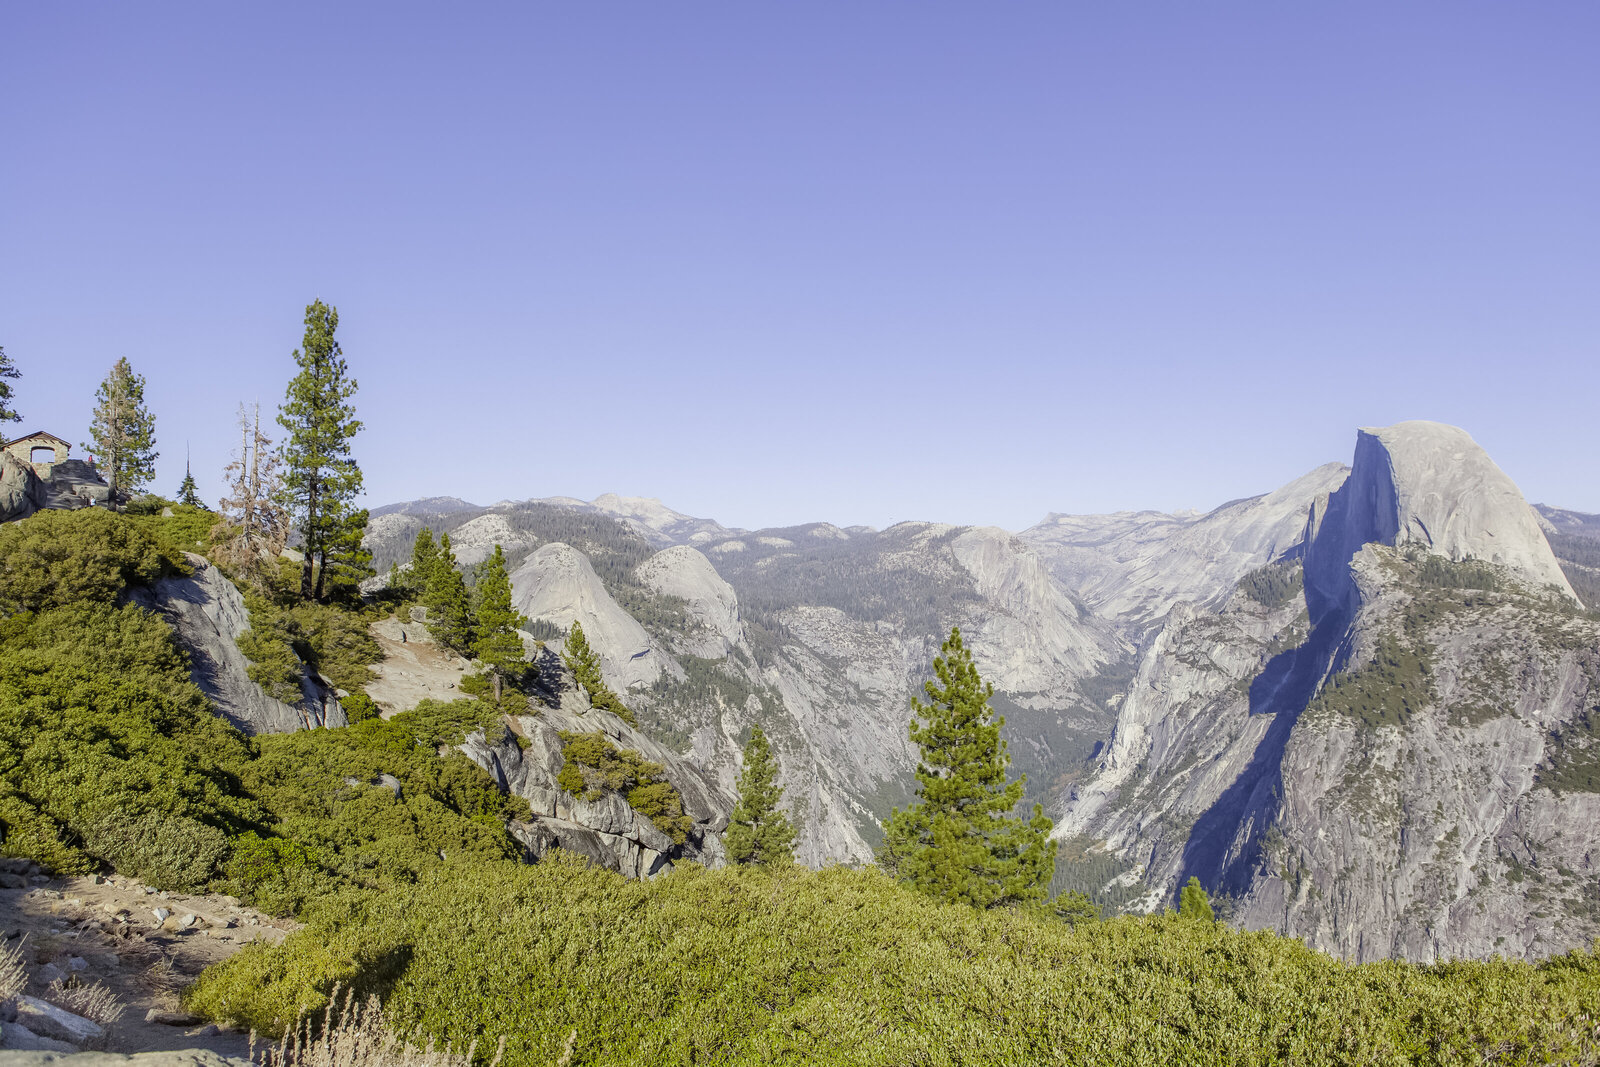 079-KBP-Yosemite-National-Park-002